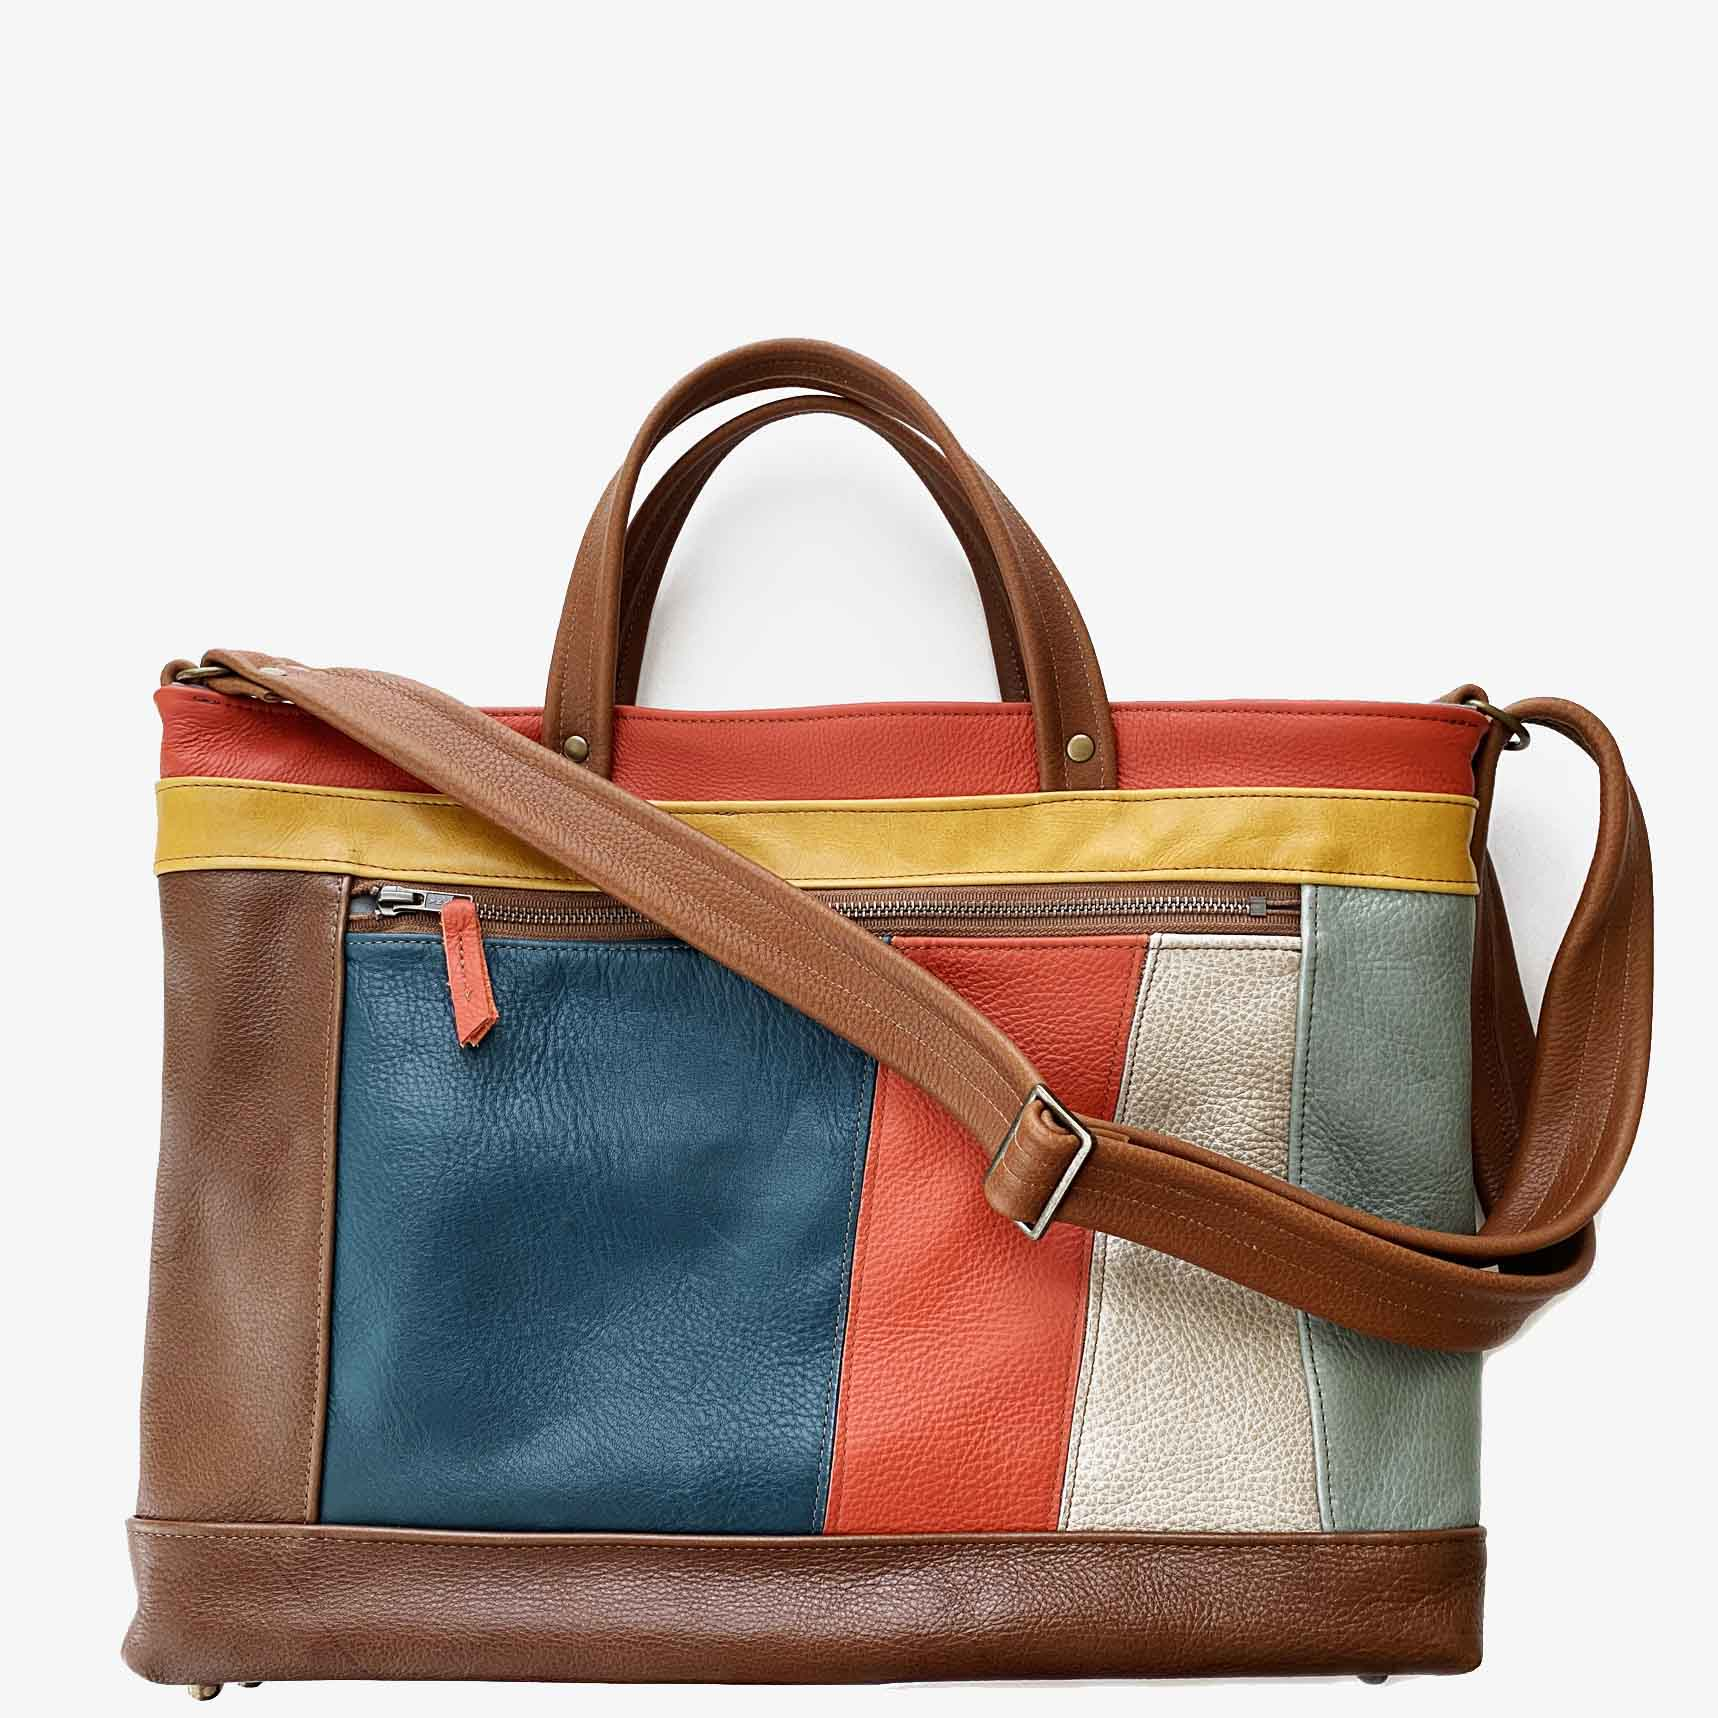 Archive Tote in Retro Patchwork, RTS